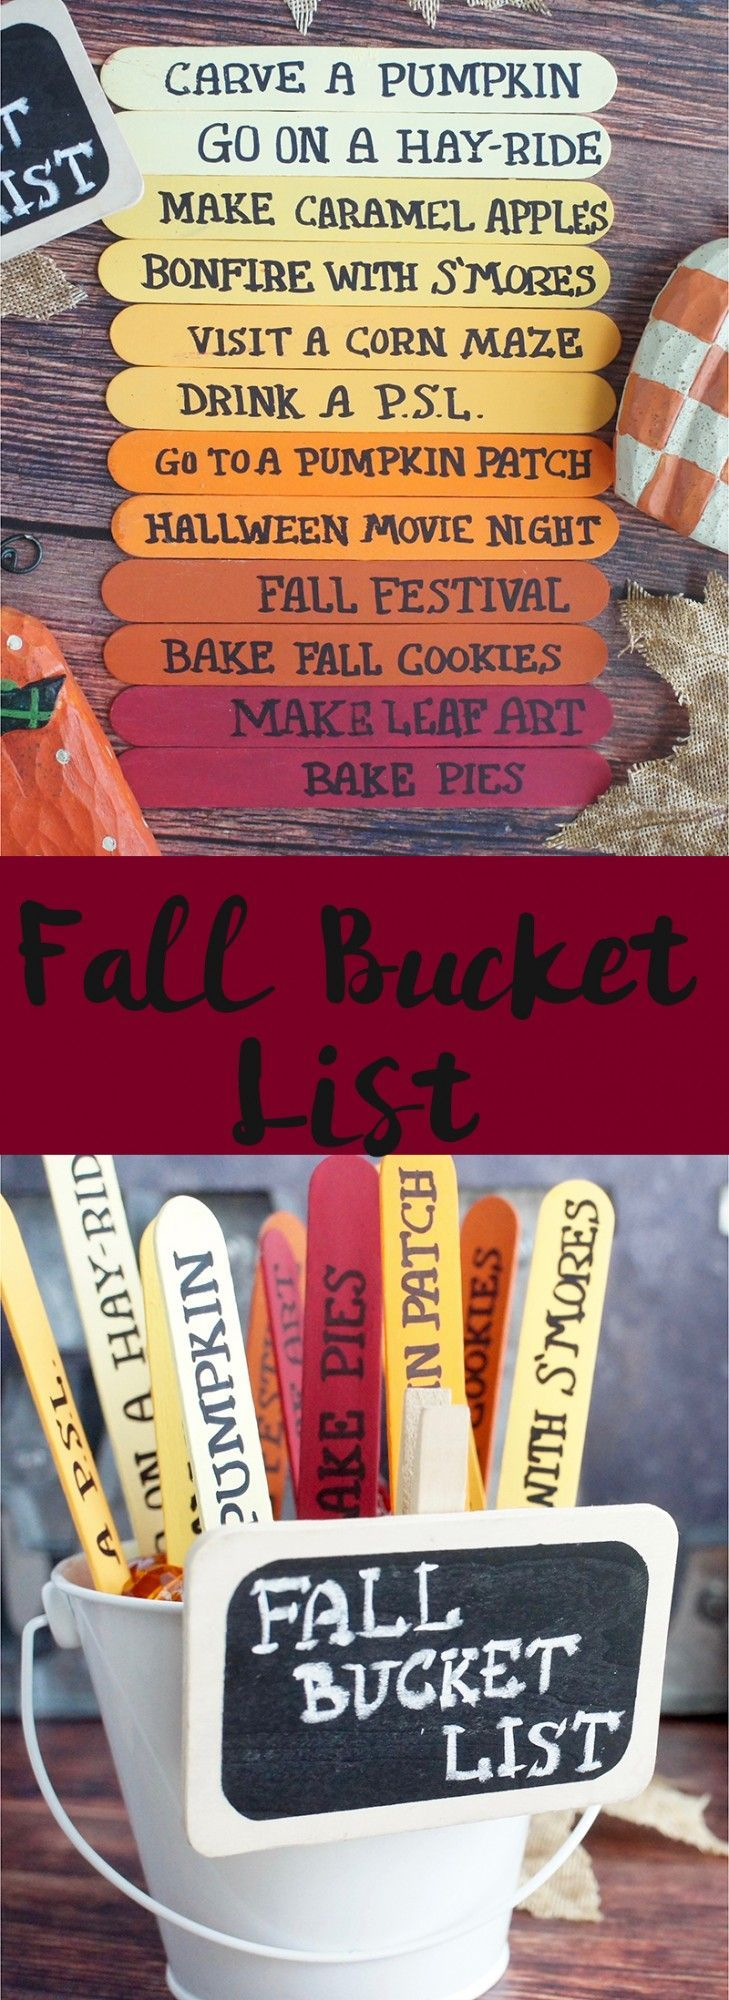 Fall Bucket List #diyfalldecor